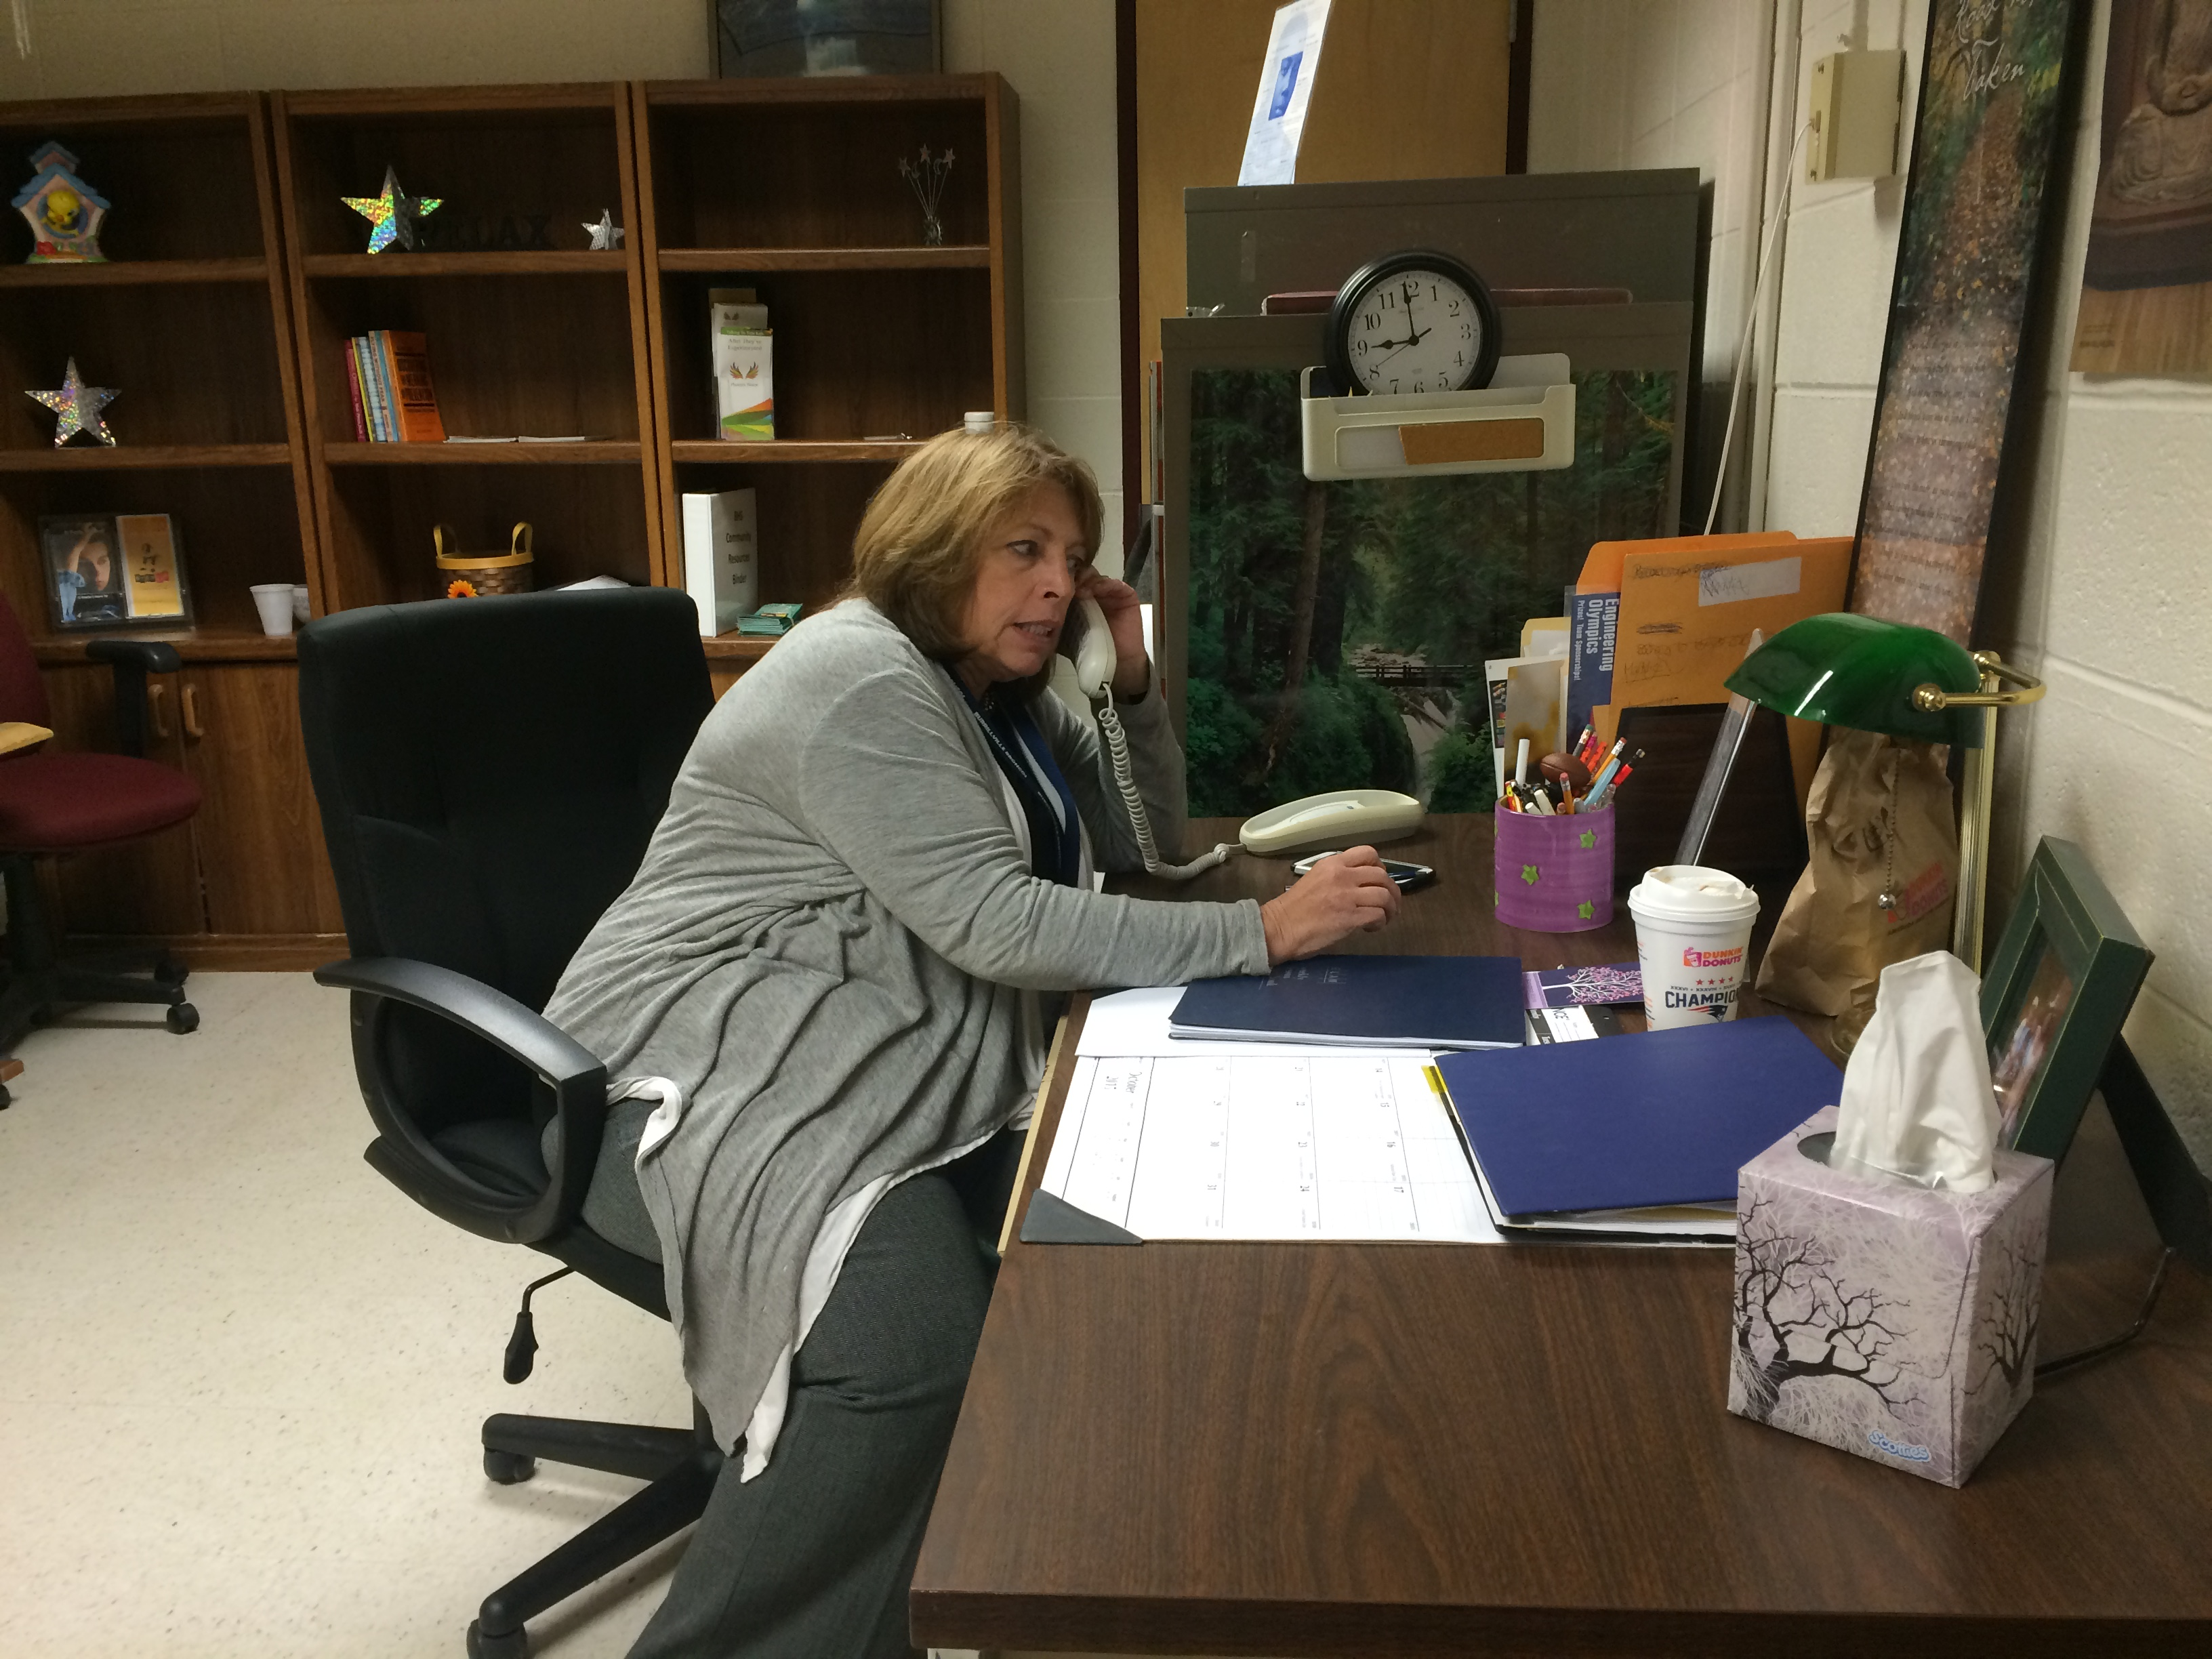 Substance Abuse Prevention Specialist Janet McLinden works with at-risk students and runs the Burrillville High School chapter of Students Against Drunk Driving